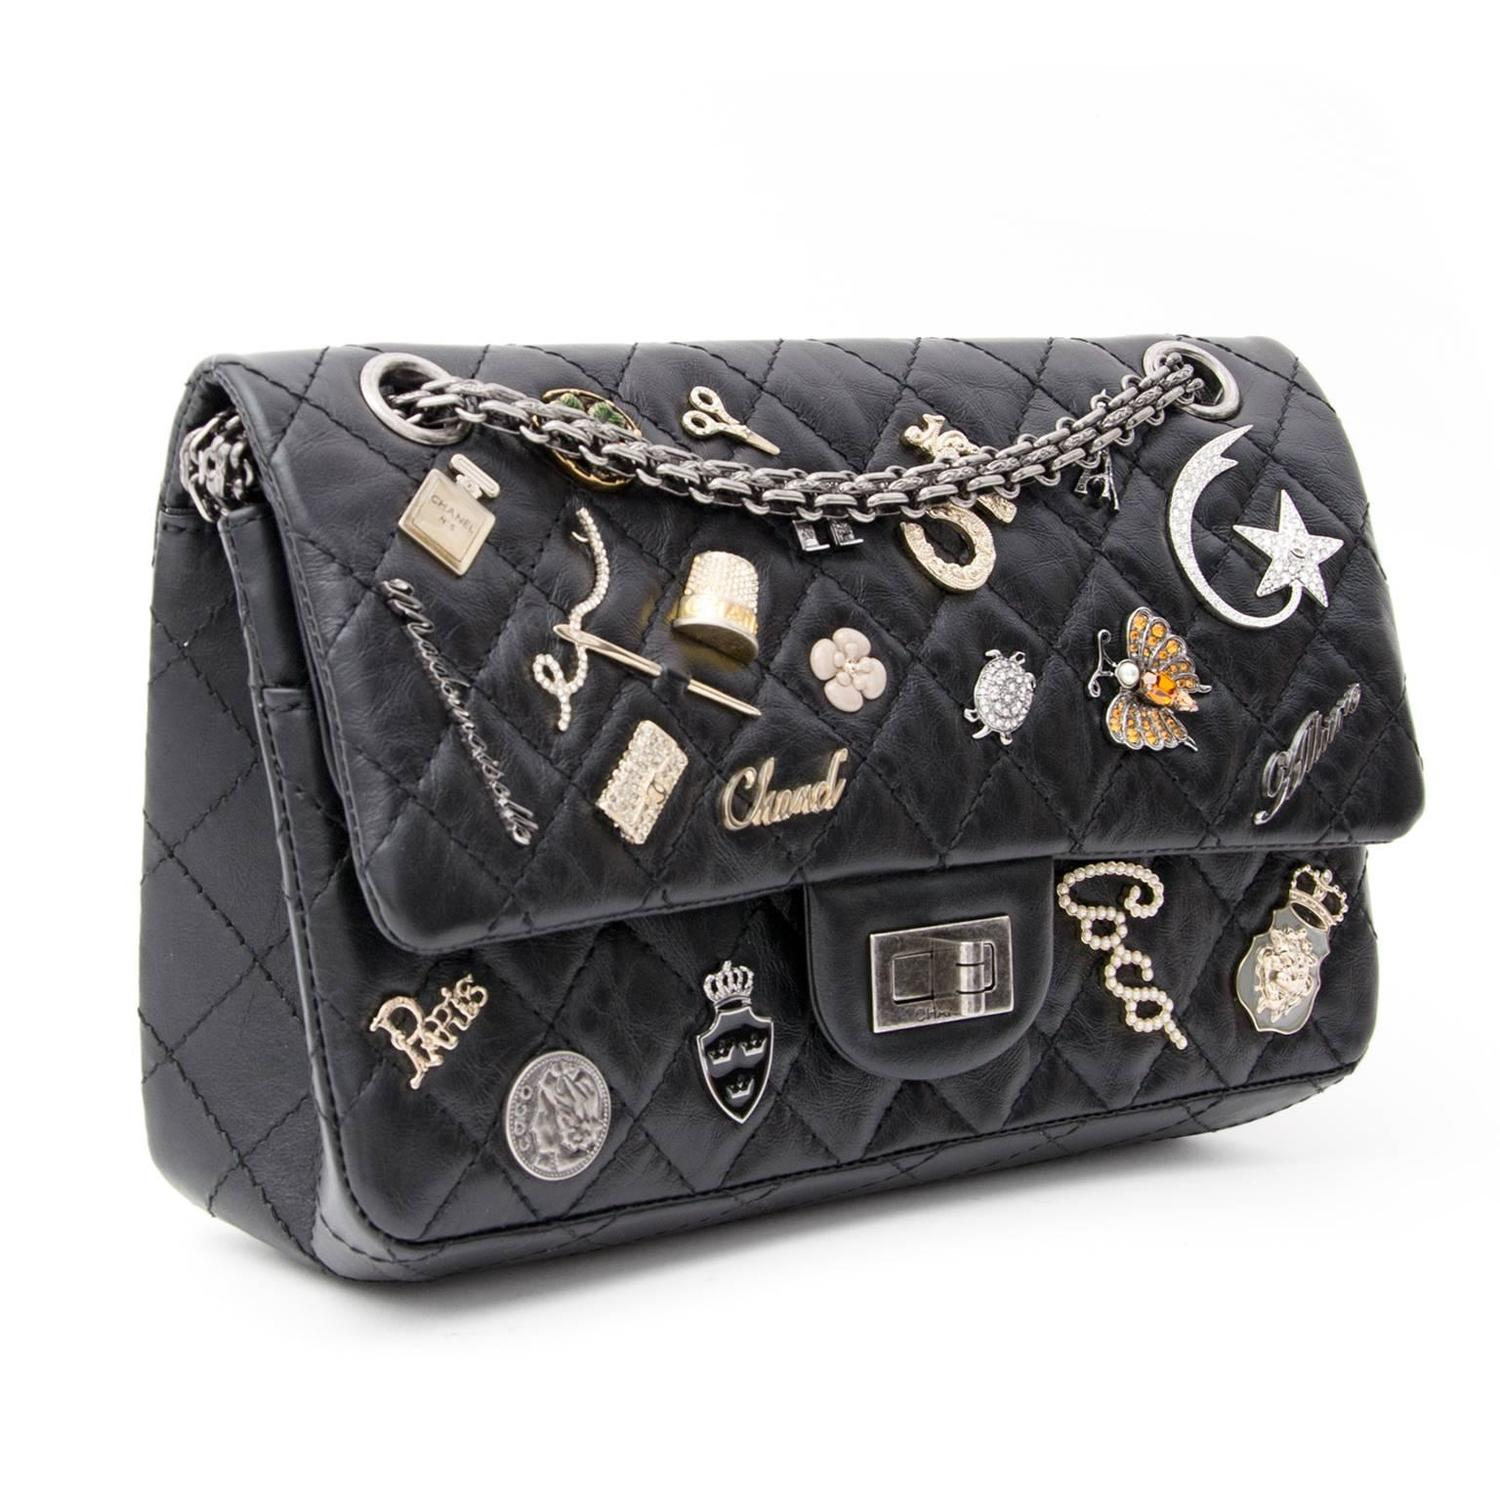 chanel lucky charm 2 55 reissue flap bag 225